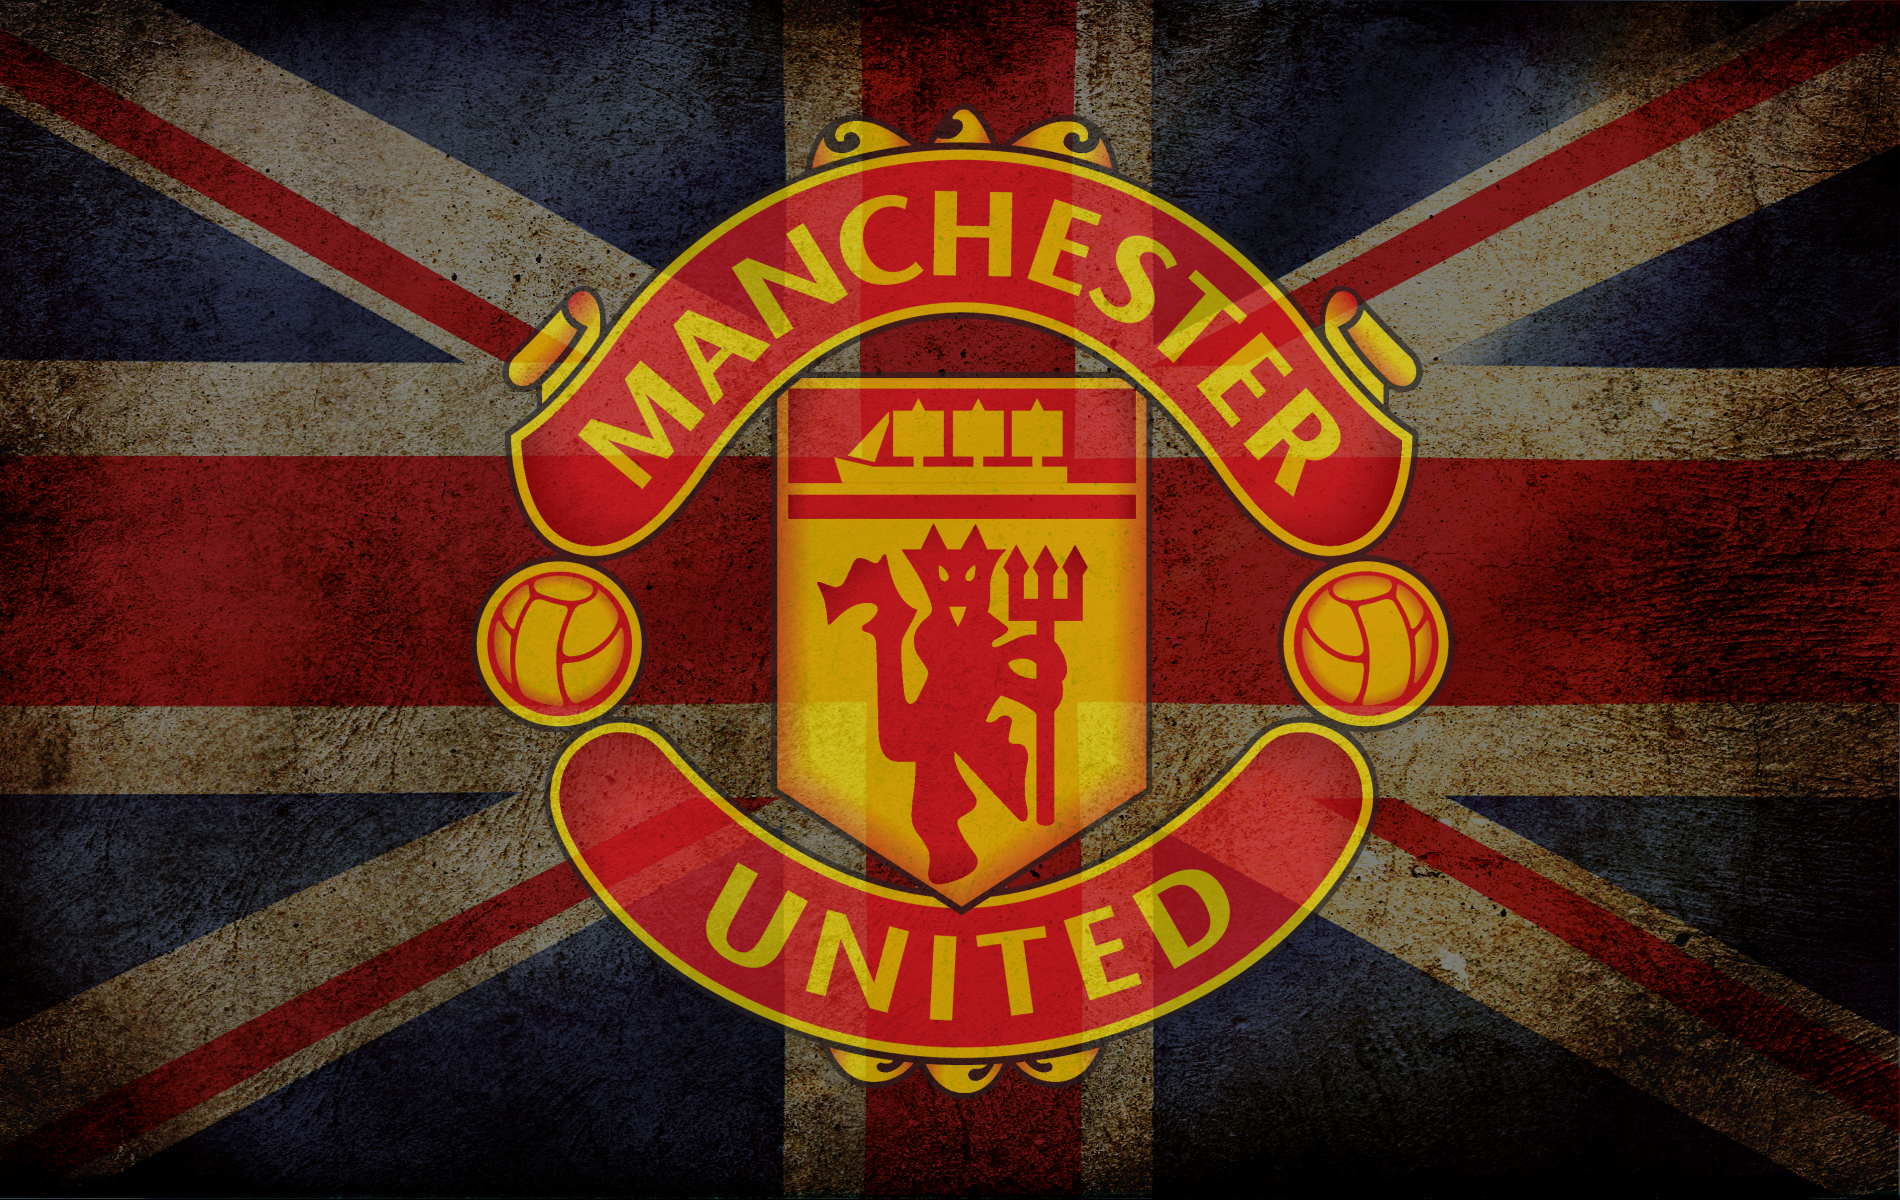 Manchester United In Flag English Wallpaper HD 255 Wallpaper High 1900x1200